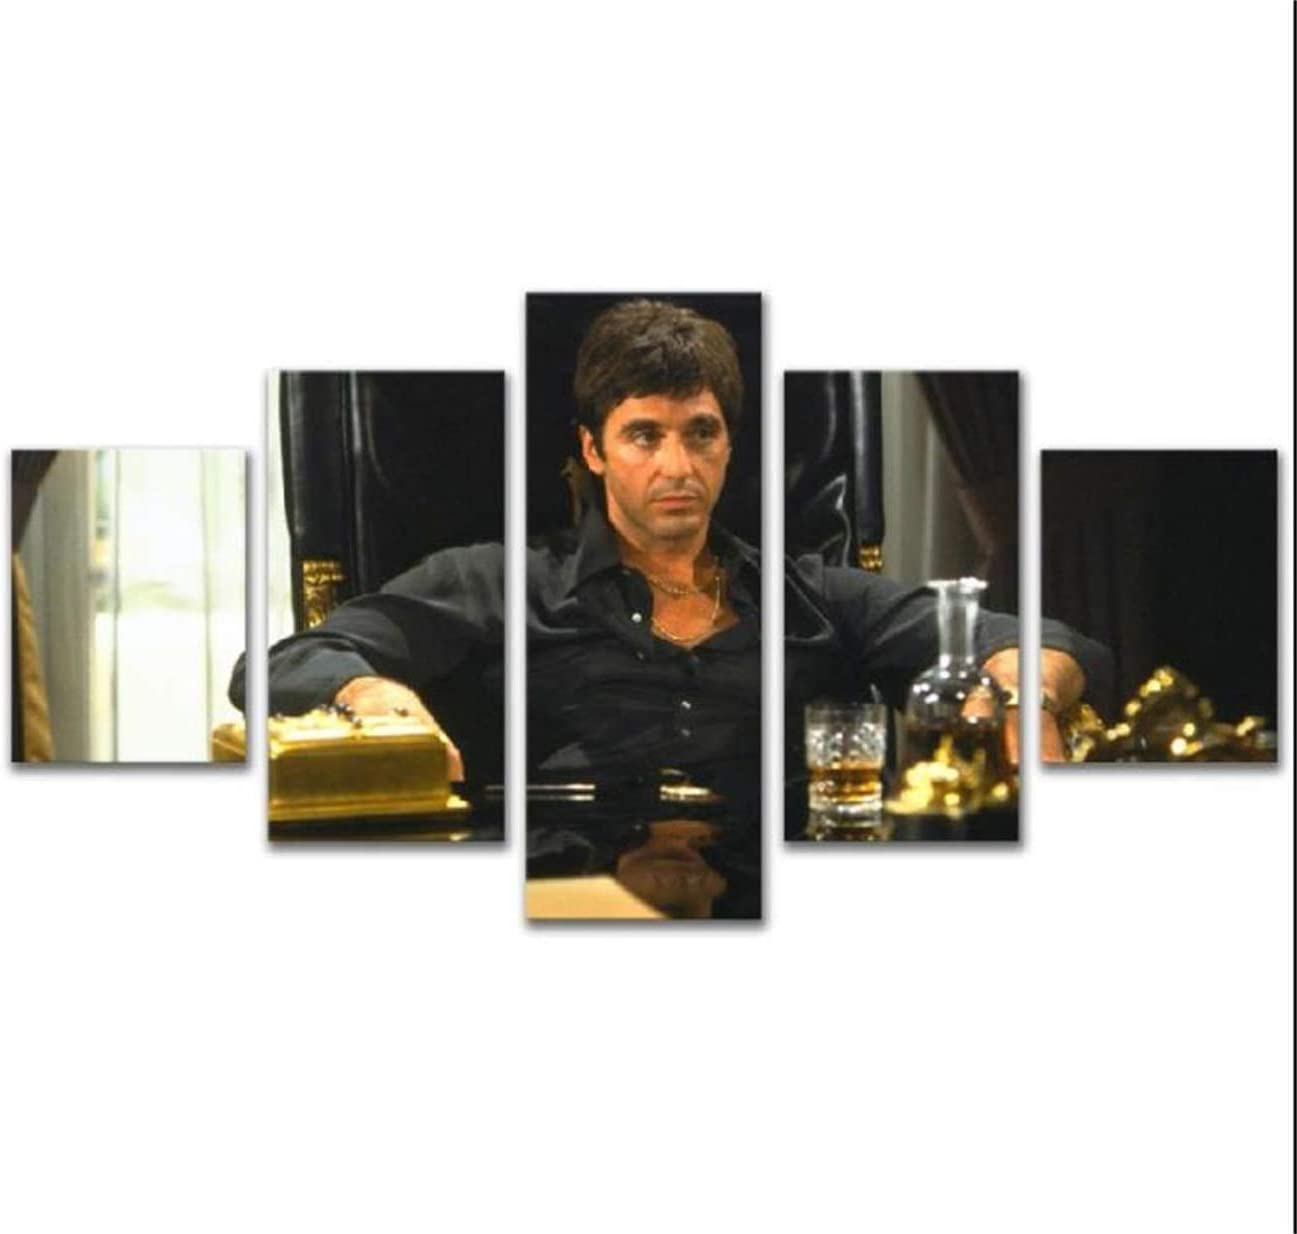 5 Panels Star Al Pacino In Tony Montana Movie Canvas Wall Art Prints Home Decor Painting for Bedroom Living Room (Framed,10x16x2 10x24x2 10x28inch)